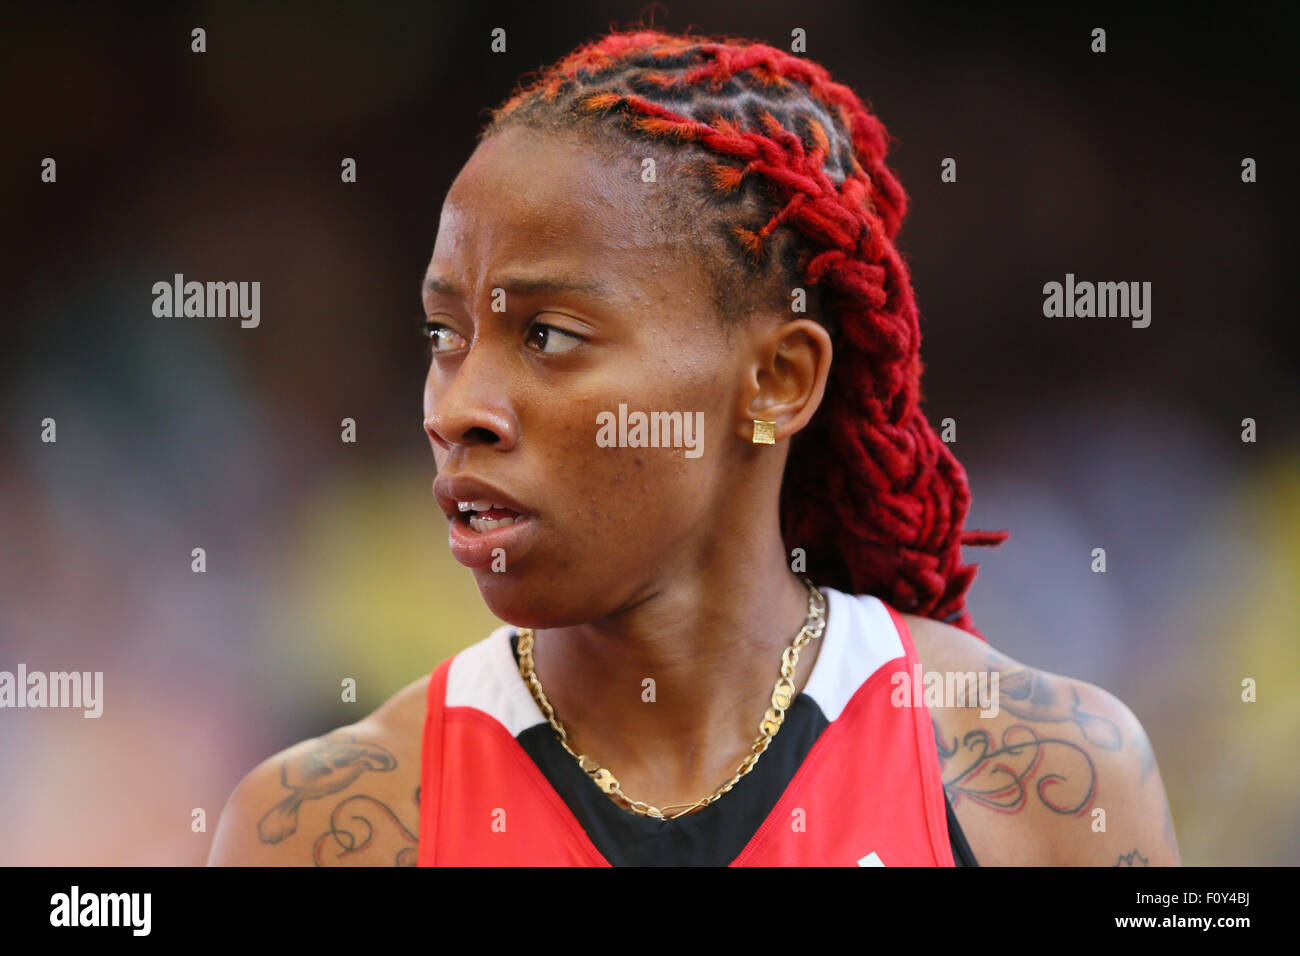 <b>Michelle-Lee</b> Ahye (TTO) Athletics : 15th IAAF World Championships in ... - beijing-china-23rd-aug-2015-michelle-lee-ahye-tto-athletics-15th-iaaf-F0Y4BJ